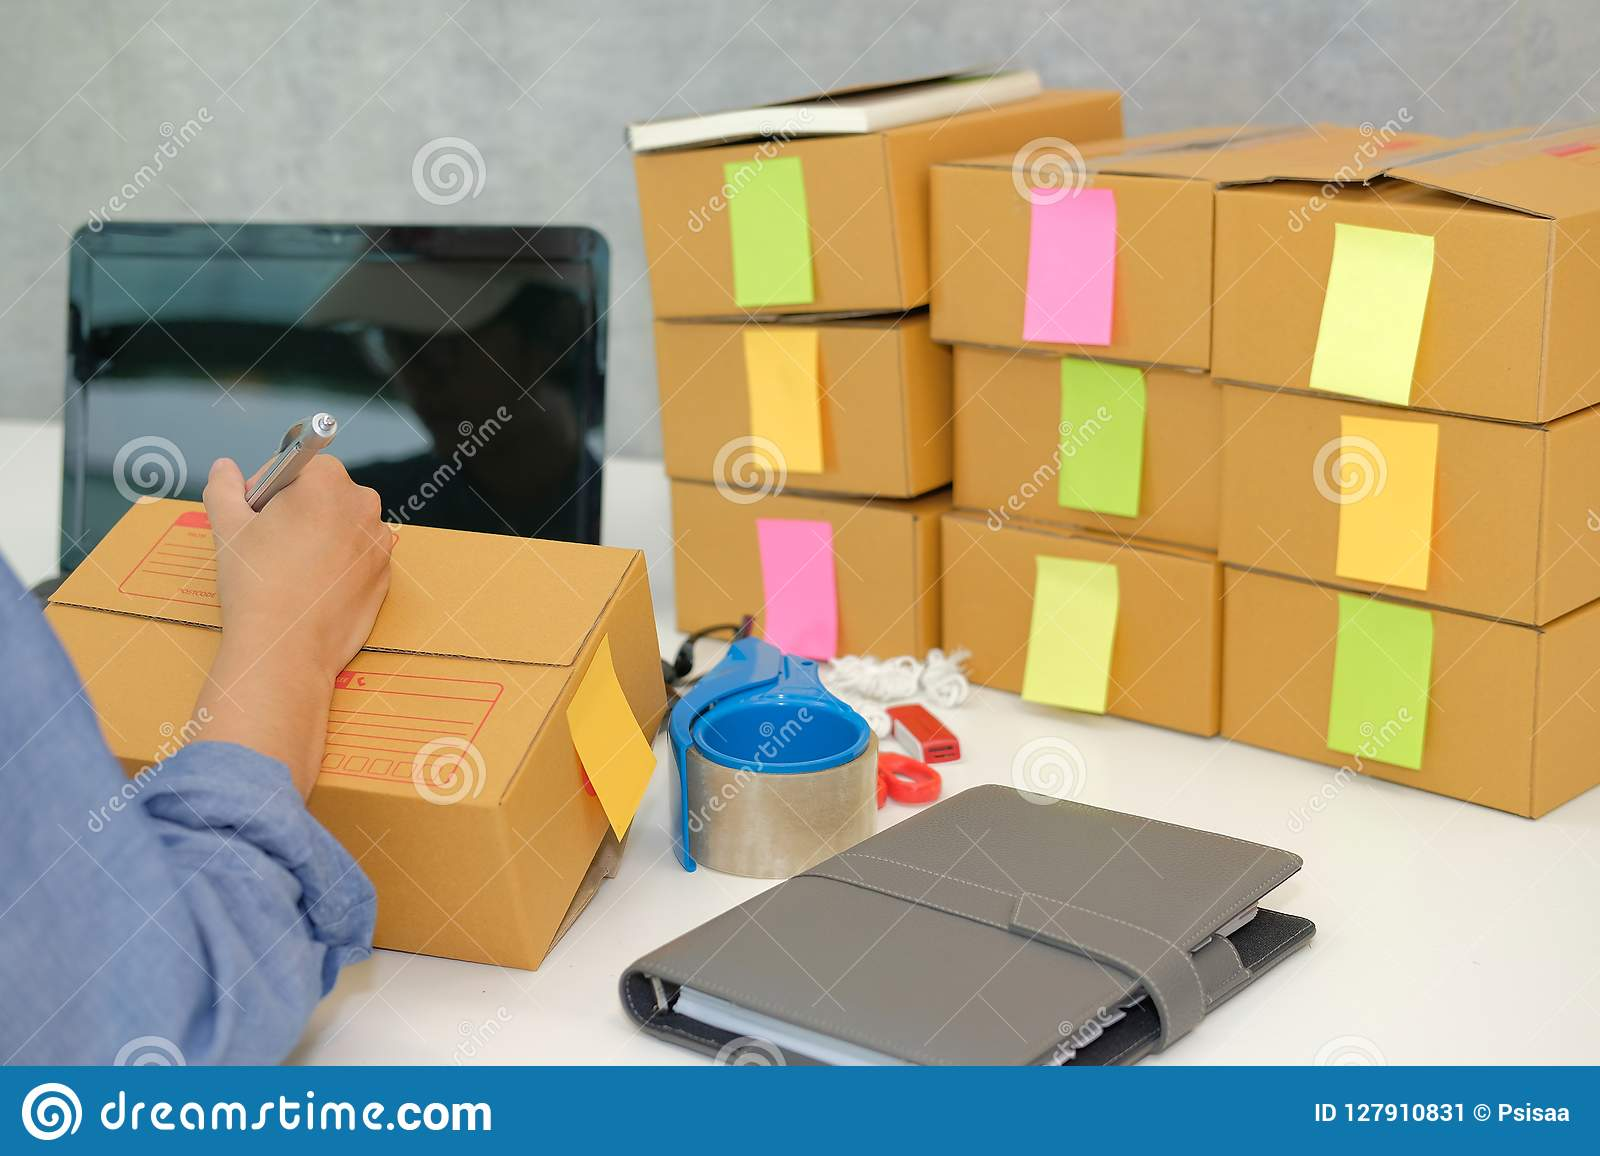 startup business owner writing address on cardboard box. woman s